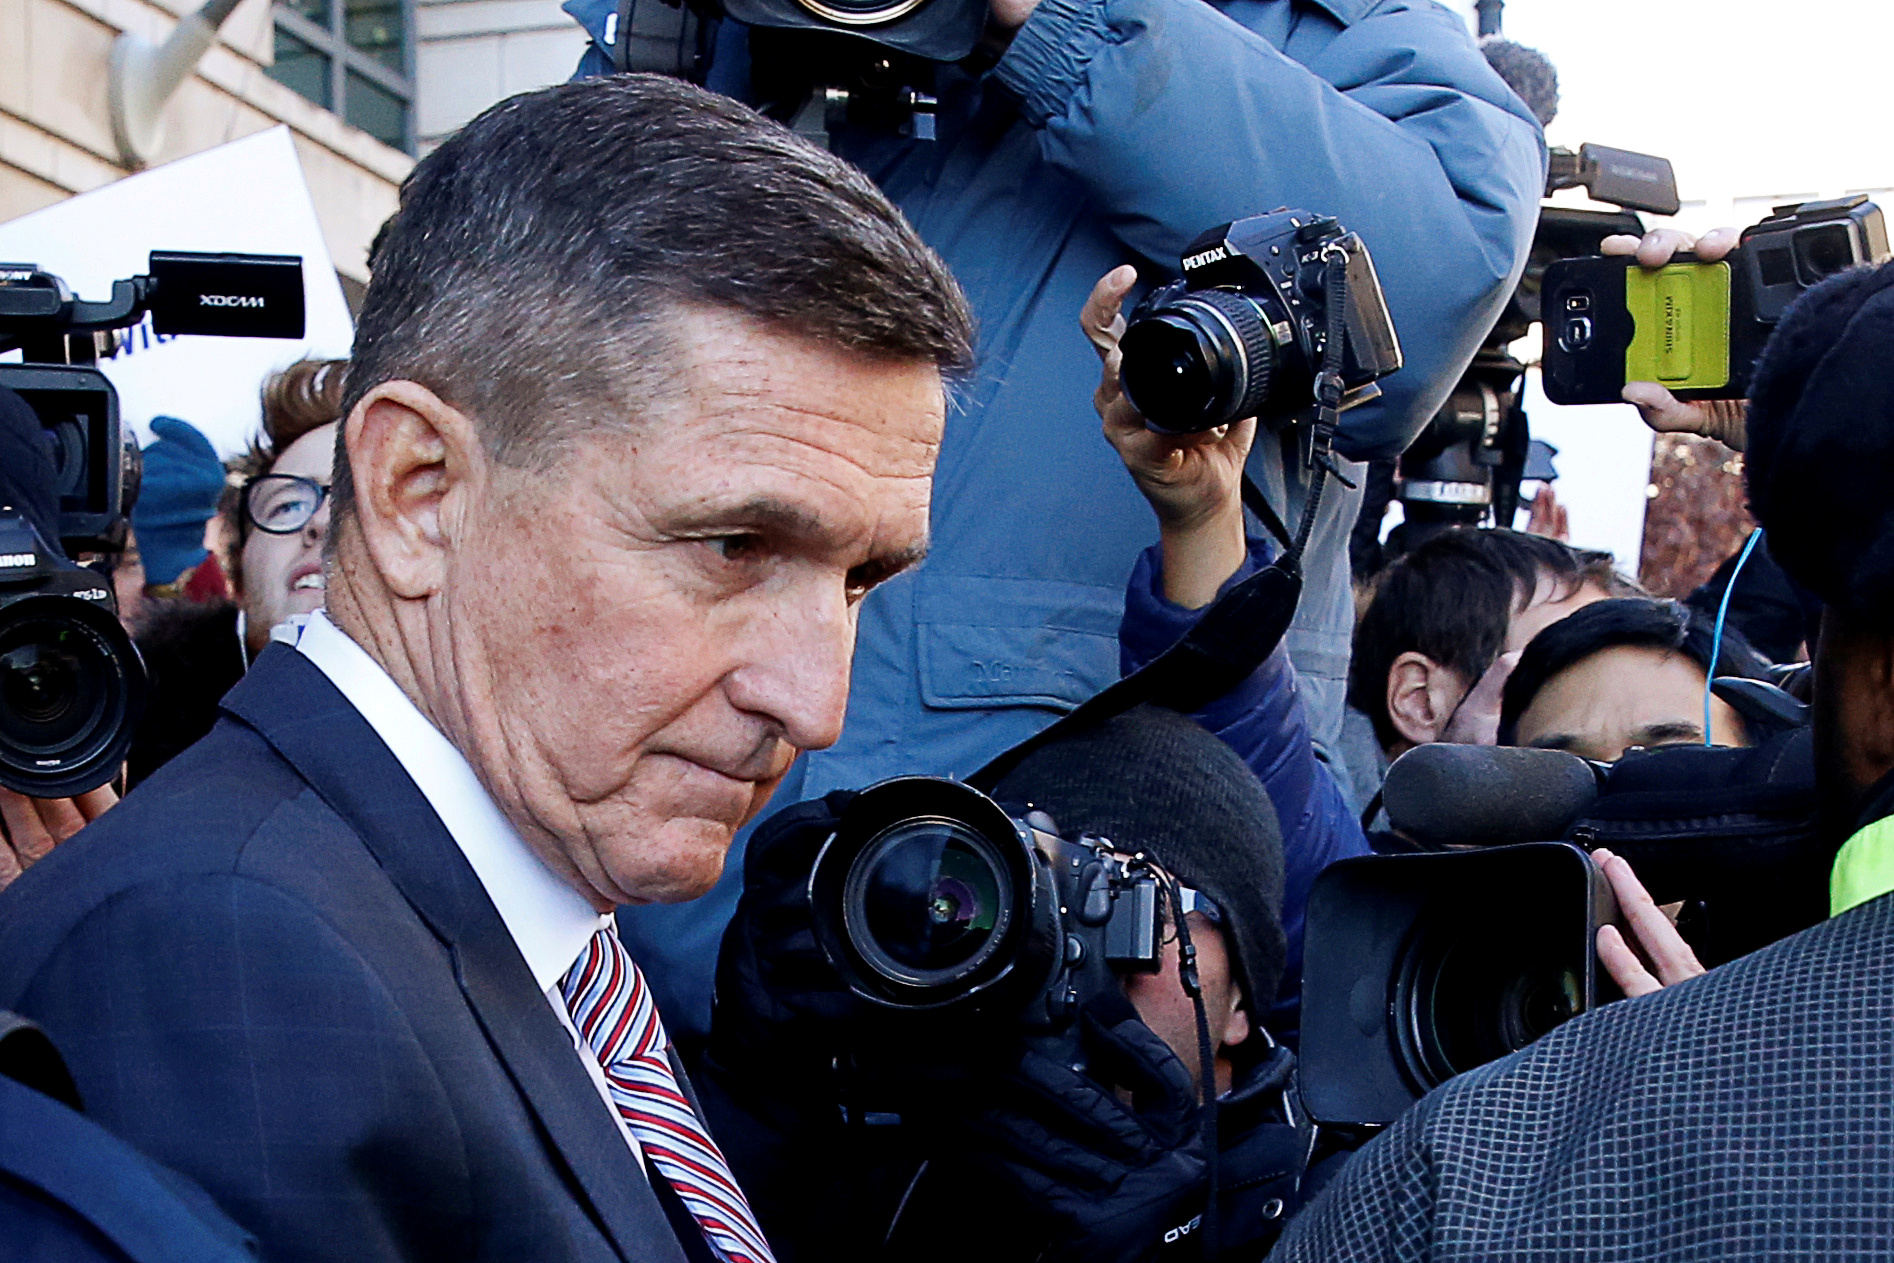 Former U.S. national security adviser Michael Flynn passes by members of the media as he departs after his sentencing was delayed at U.S. District Court in Washington, U.S., December 18, 2018. REUTERS/Joshua Roberts